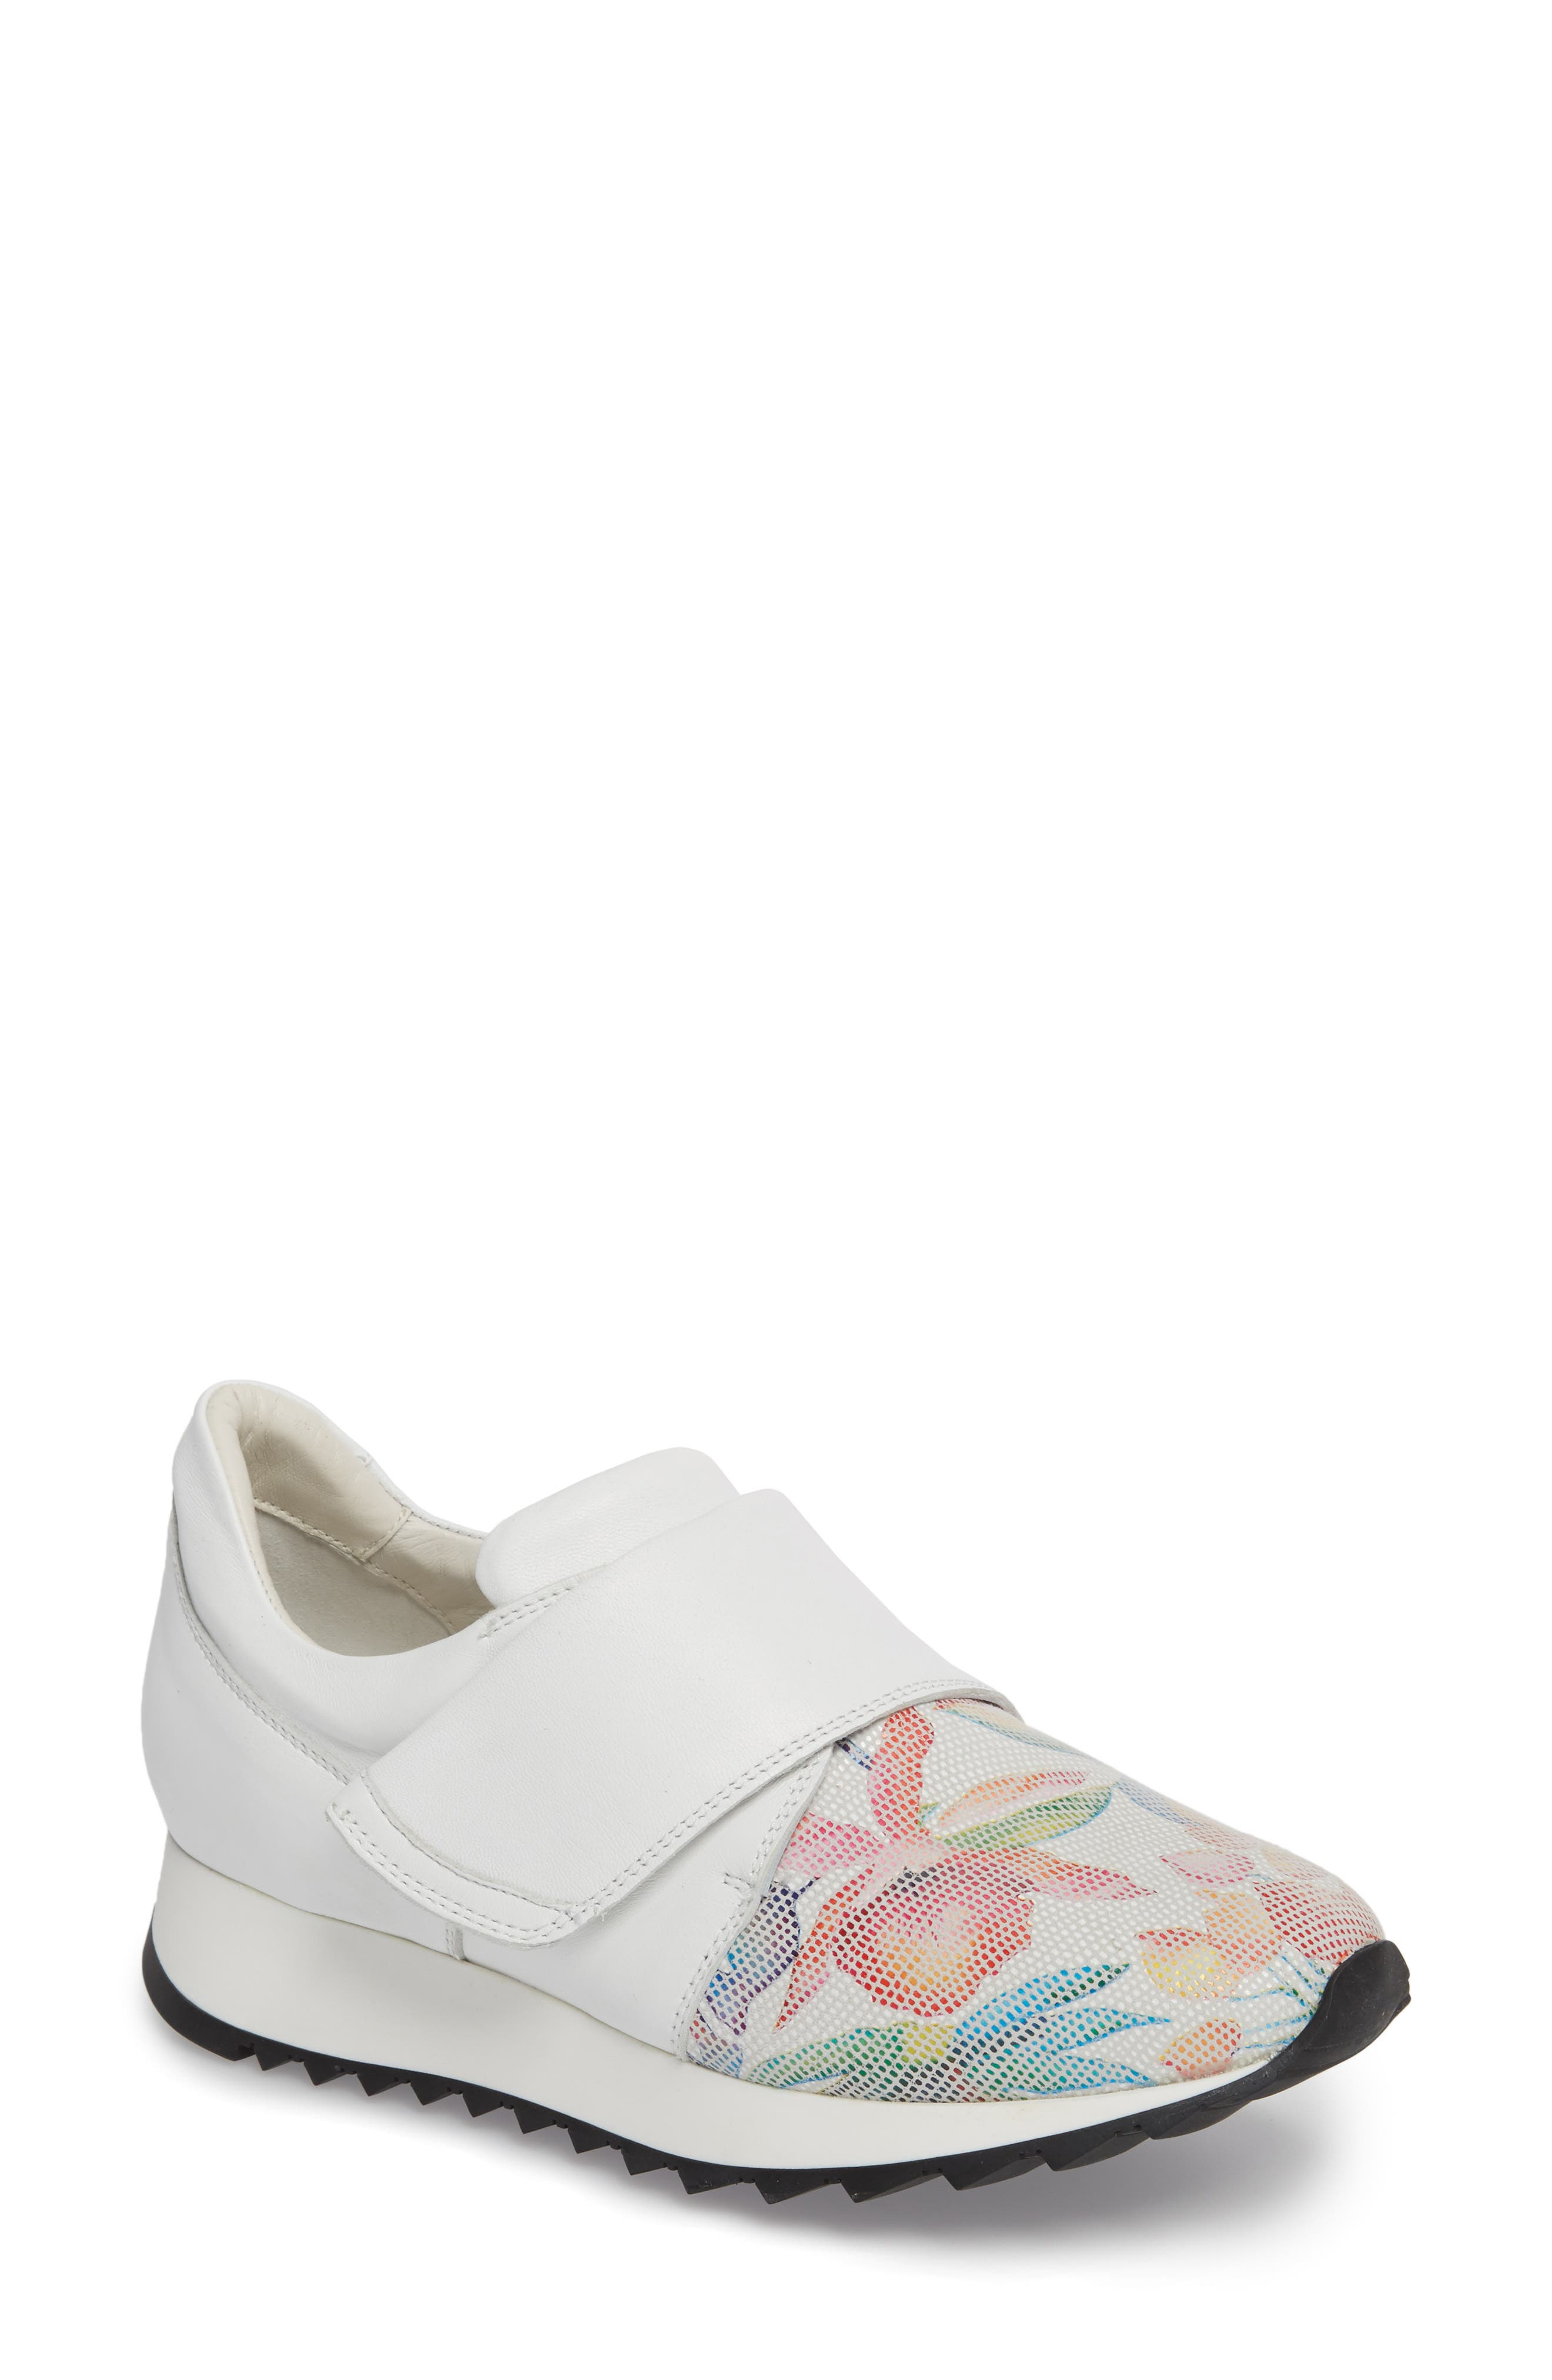 Danza Wedge Sneaker,                             Main thumbnail 1, color,                             WHITE LEATHER